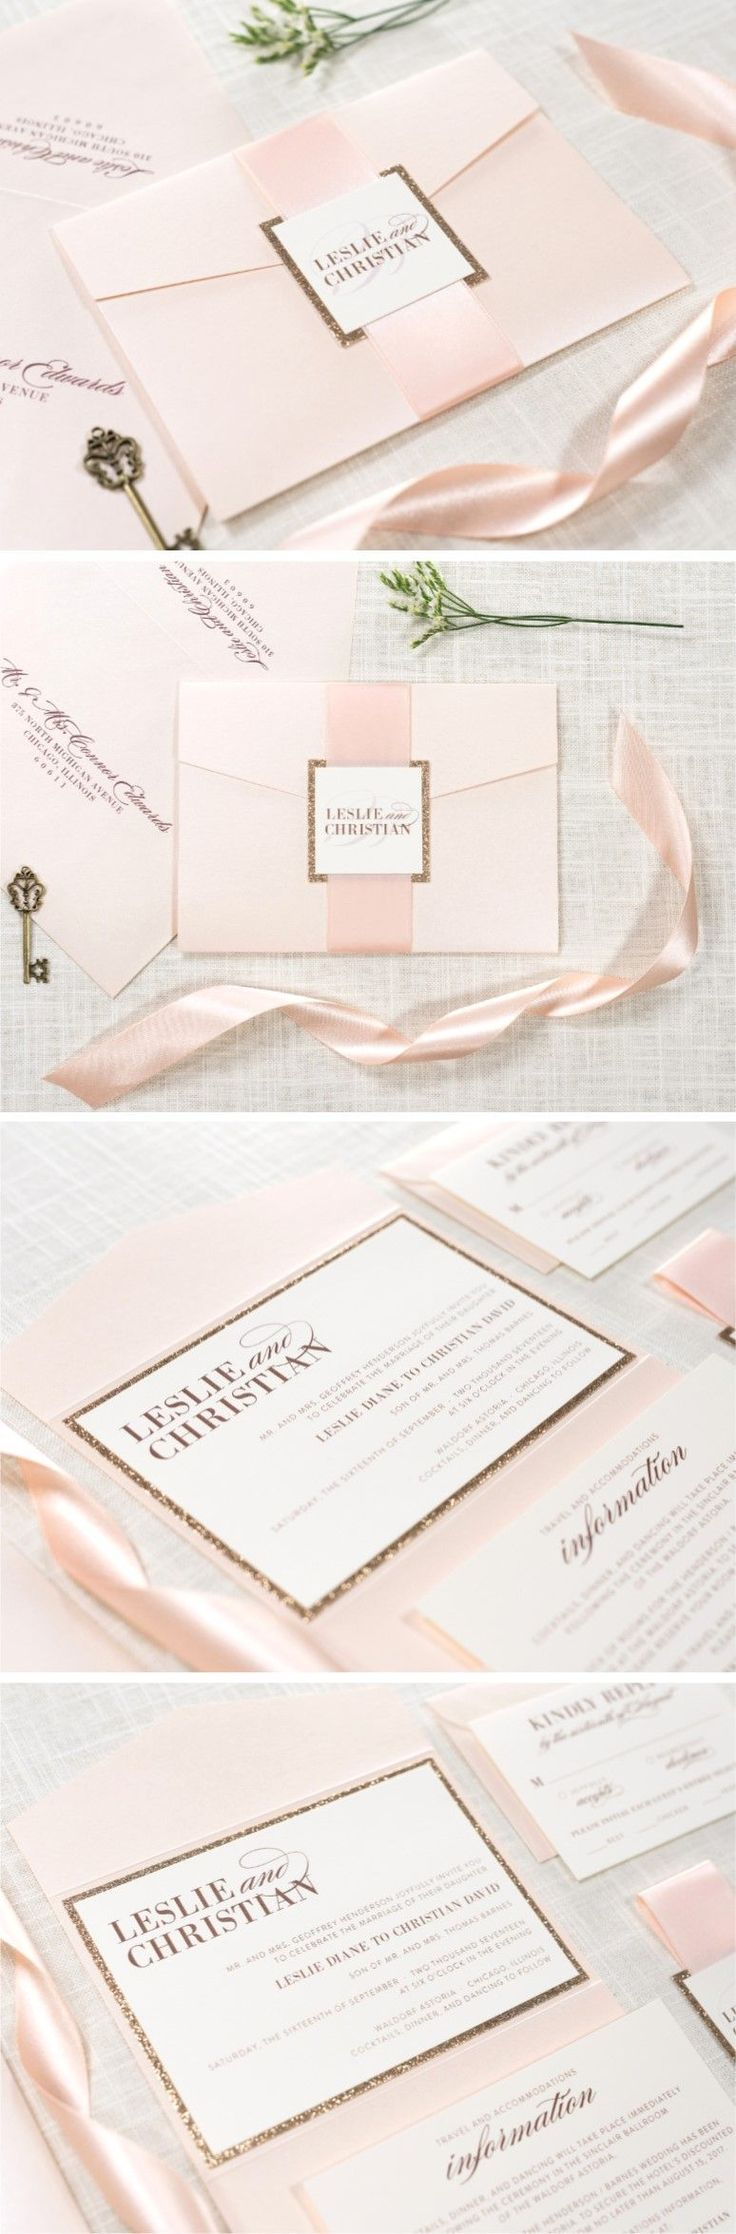 second wedding invitation verbiage%0A Blush Shimmer  Rose Gold Glitter  and Ivory Pocket Fold Wedding Invitation  Suite with Satin